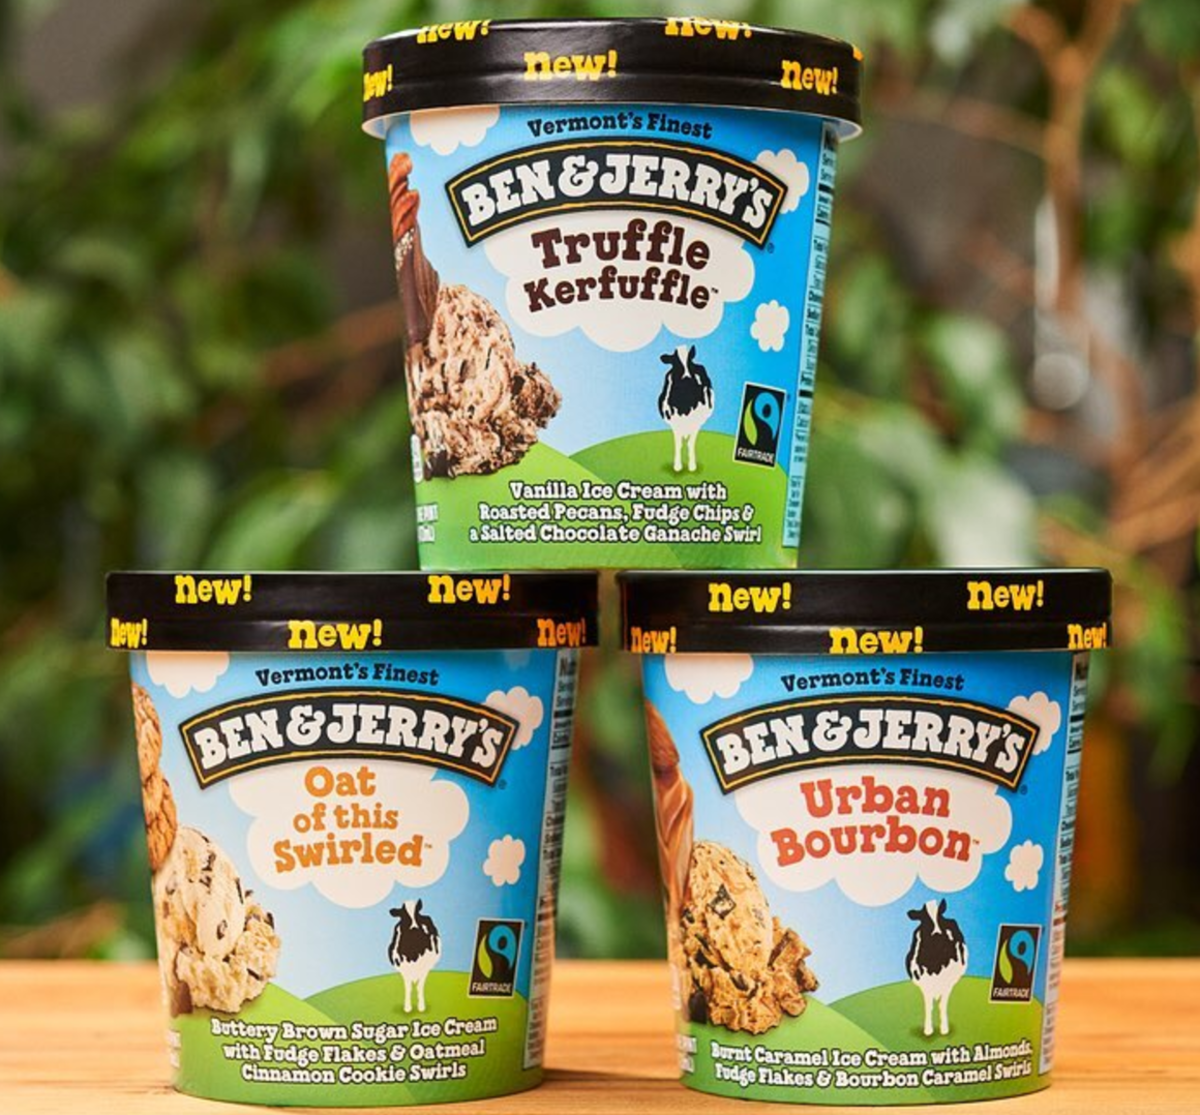 Testing finds traces of risky chemical in Ben & Jerry's ice cream